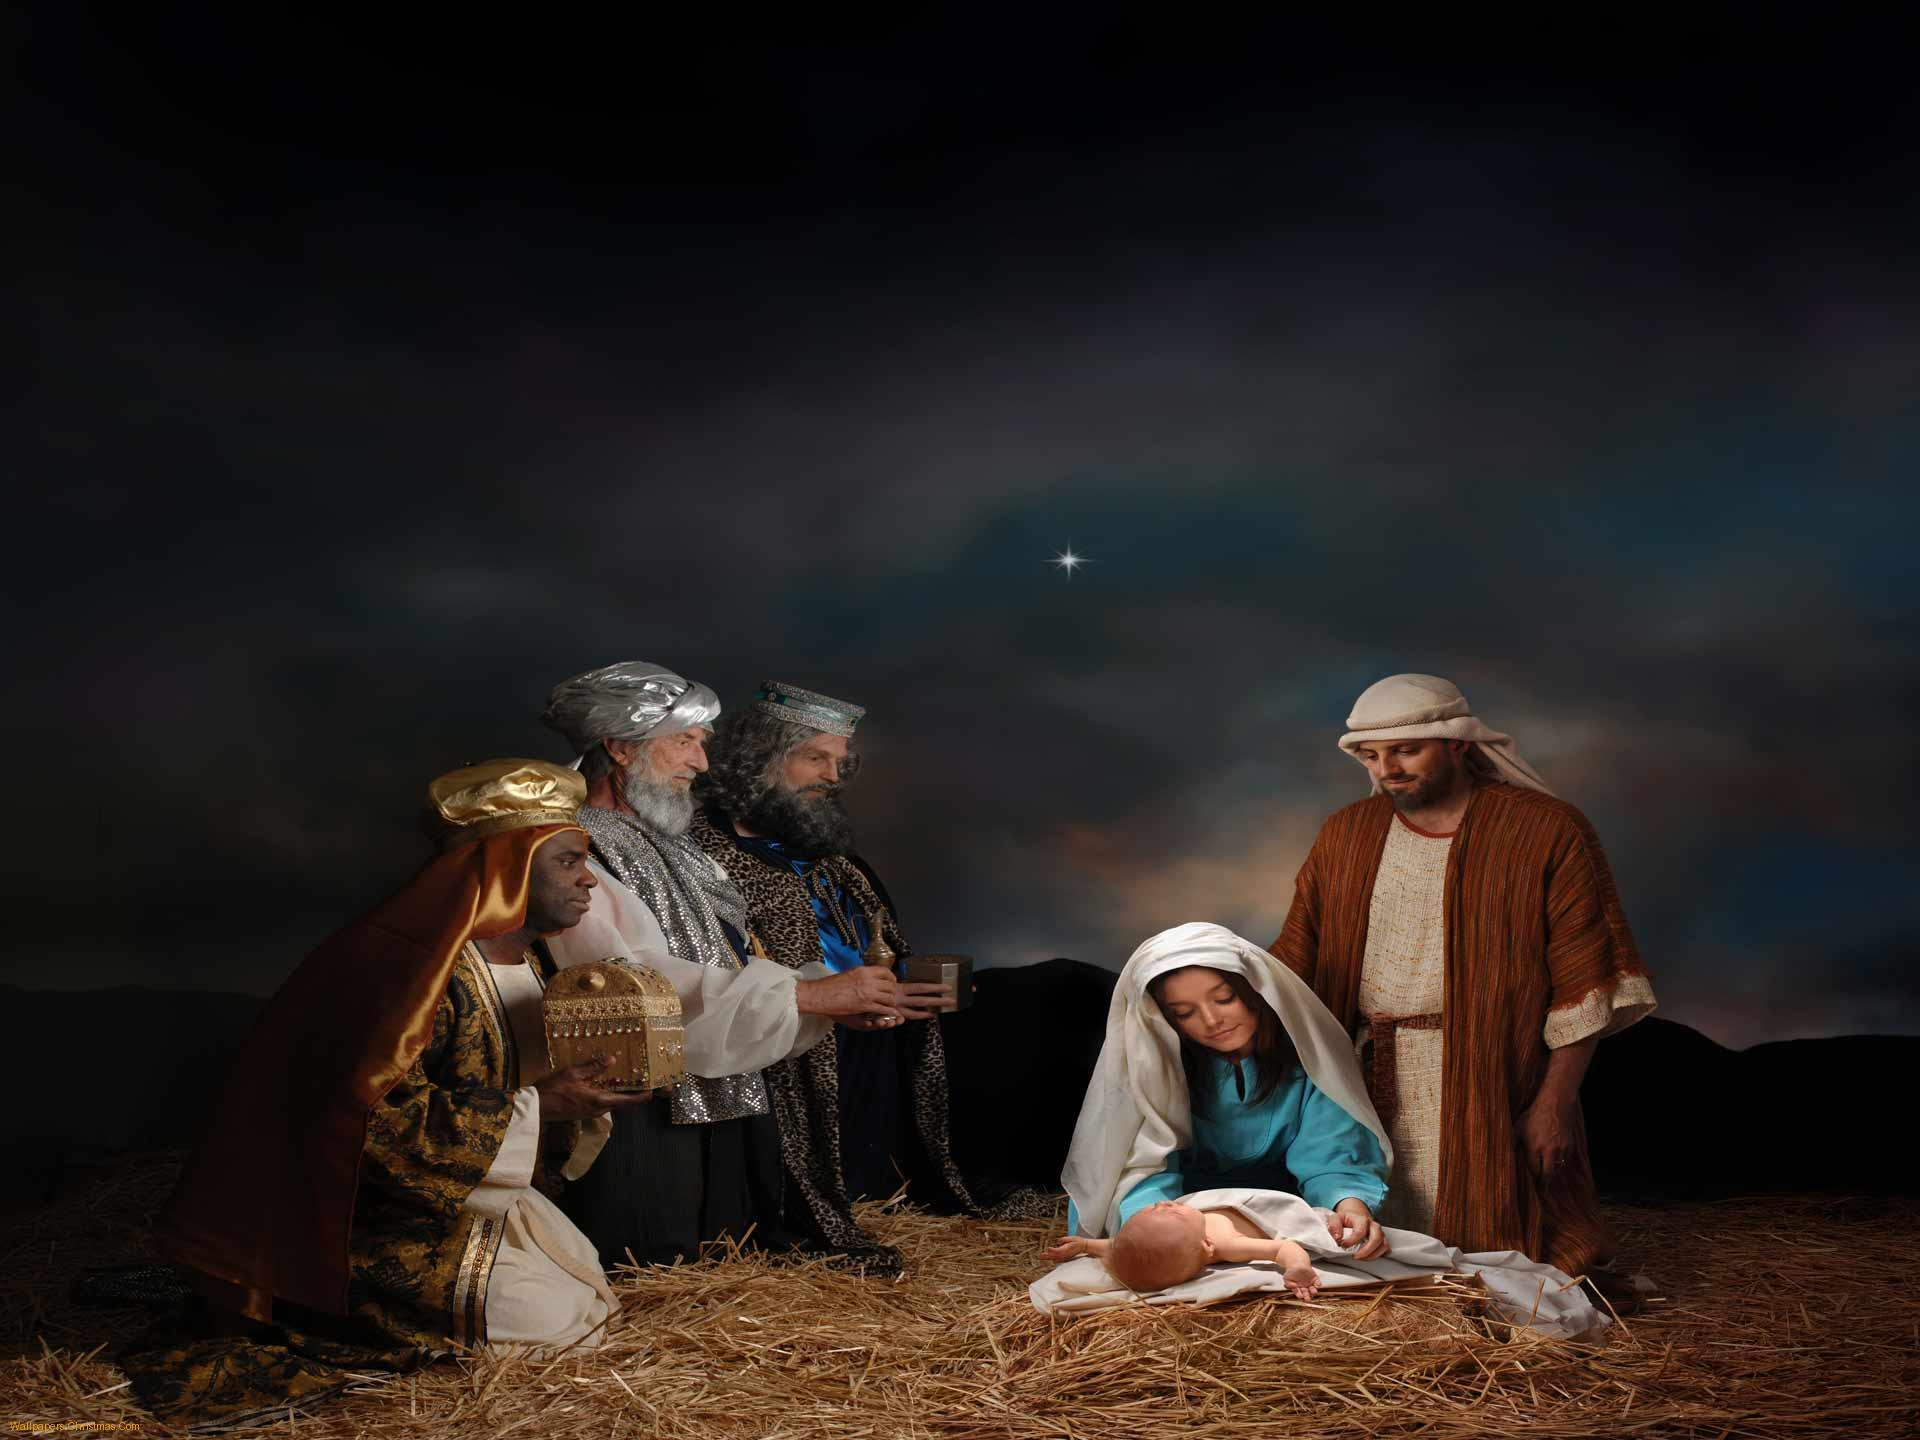 Nativity Scene Backgrounds - Wallpaper Cave